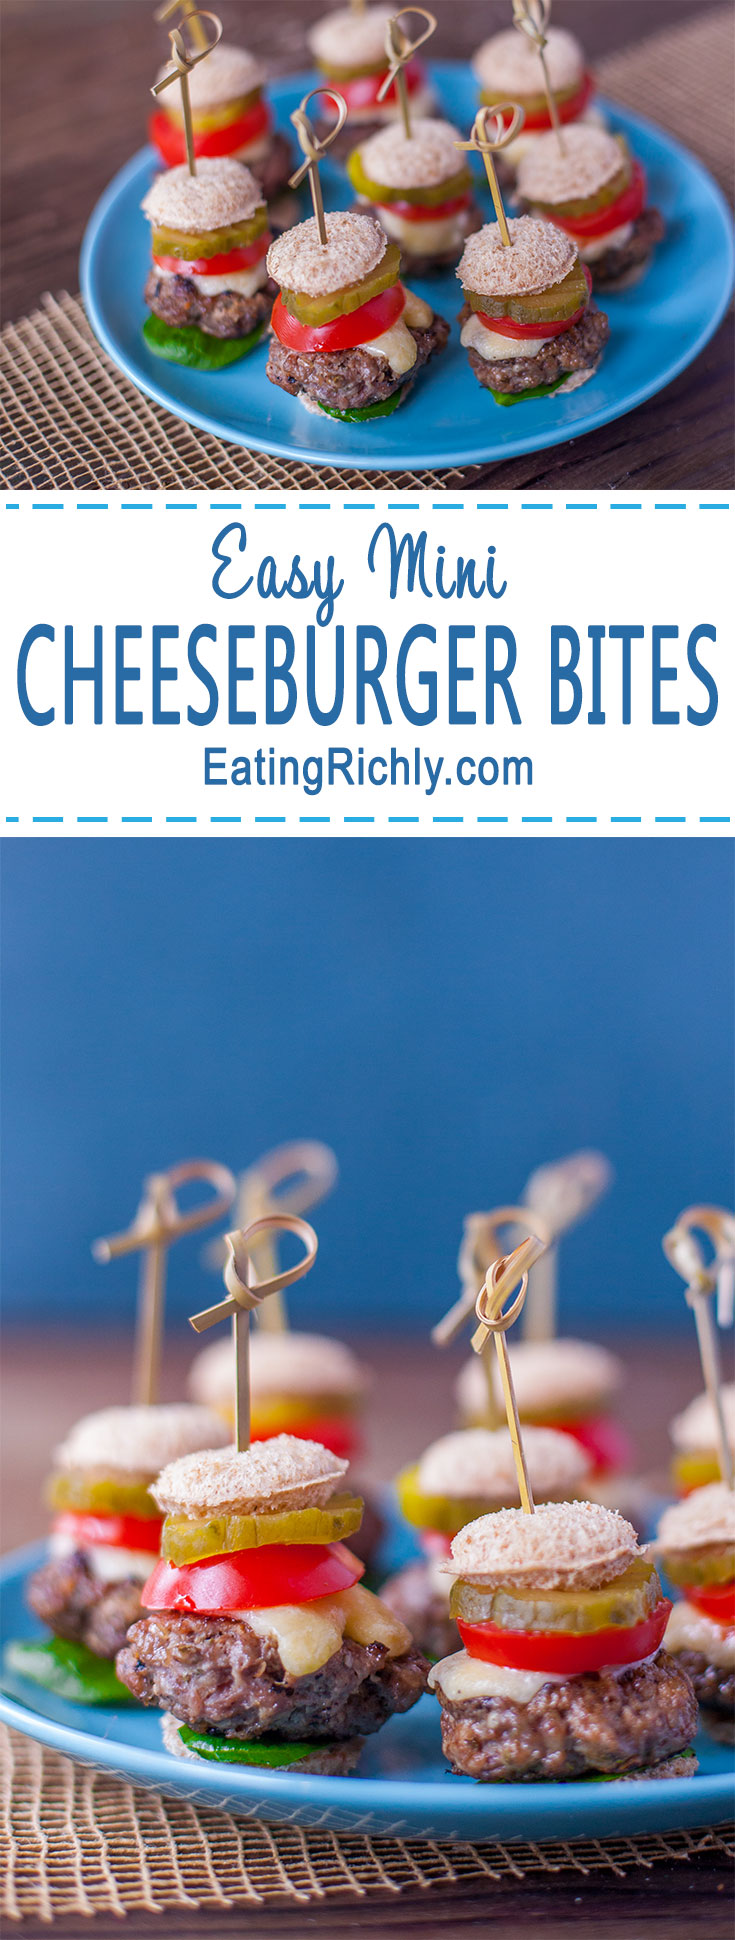 Cheeseburger bites turn your favorite burger into an adorable appetizer that's perfect for parties.  Easily dairy/gluten free. Bet you can't eat just one! From EatingRichly.com